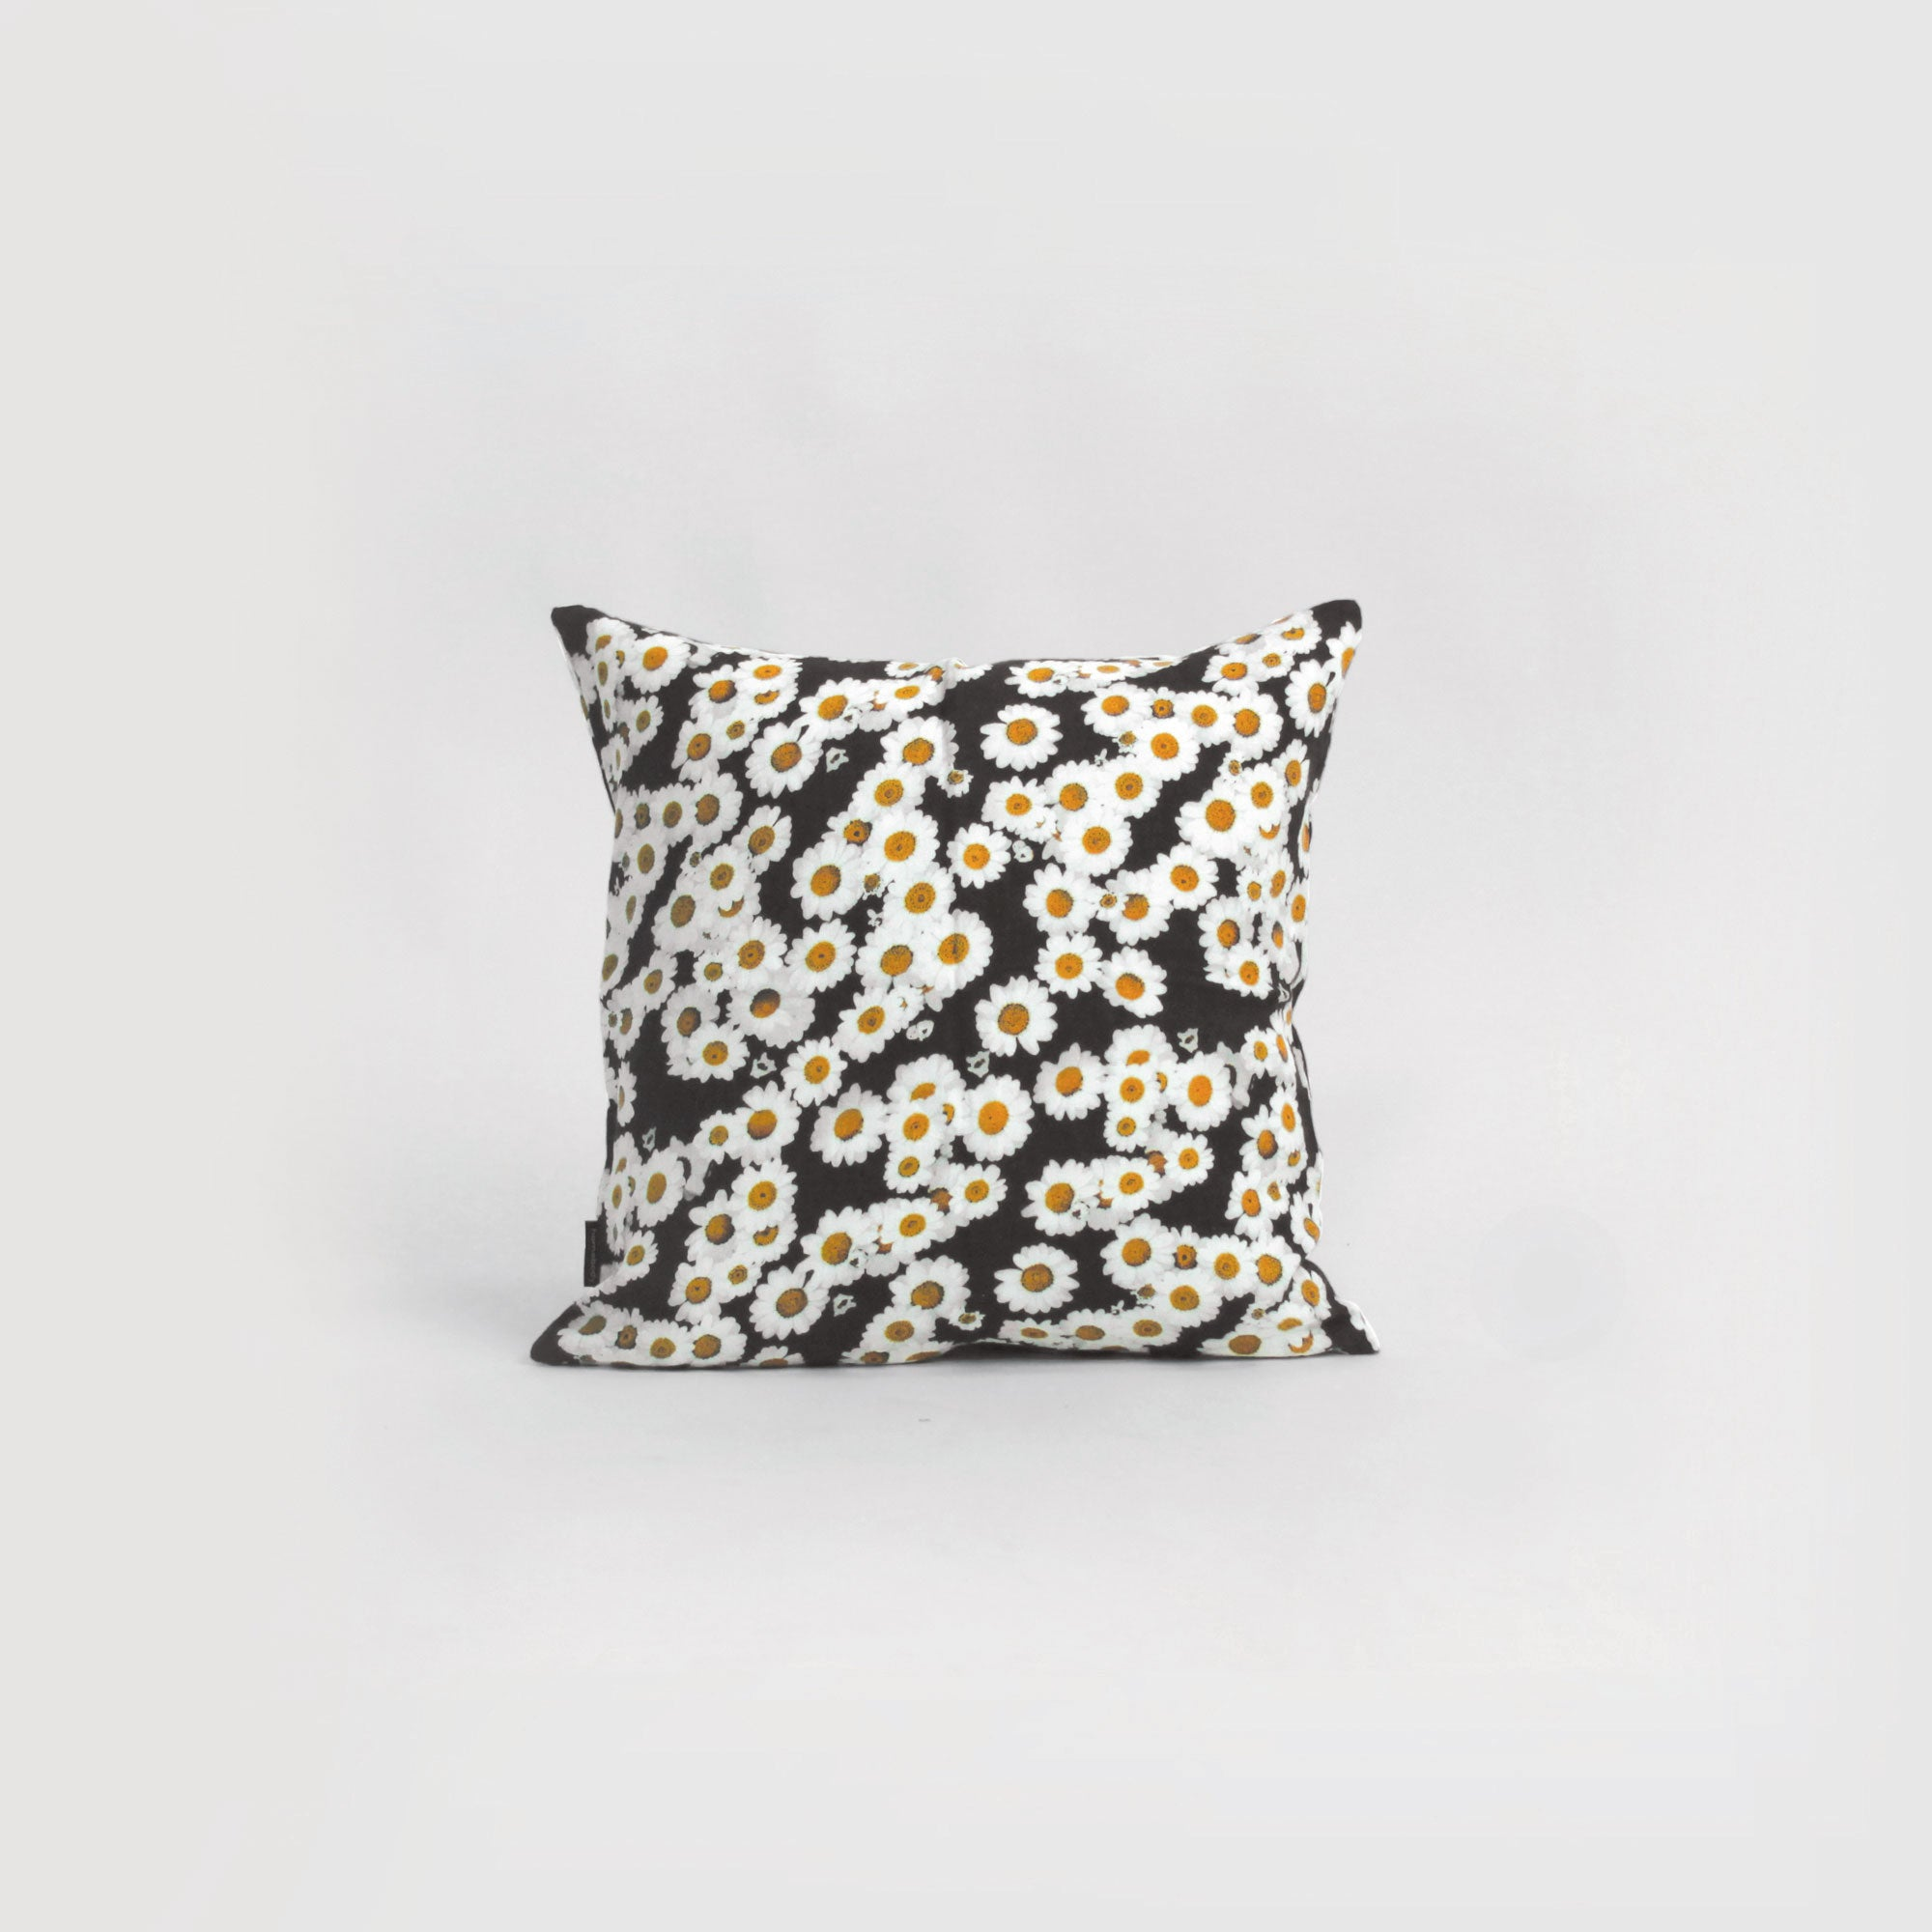 homebody daisy print linen cushion in black, white and mustard